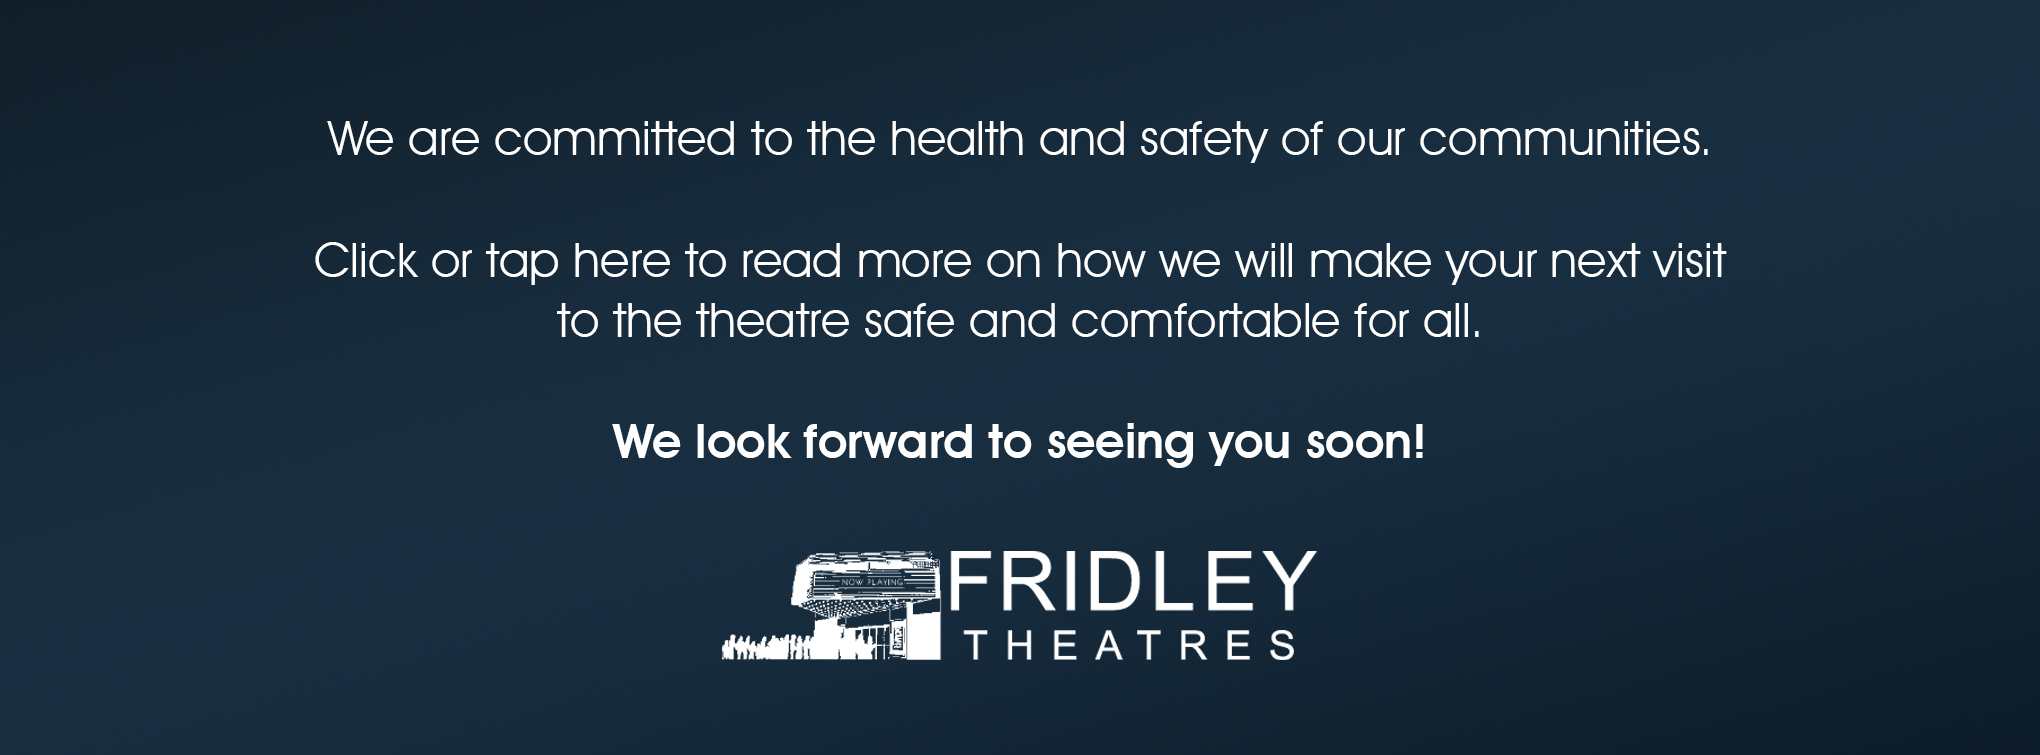 We are committed to the health and safety of our communities.  Click or tap here to read more on how we will make your next visit to the theatre safe and comfortable for all.